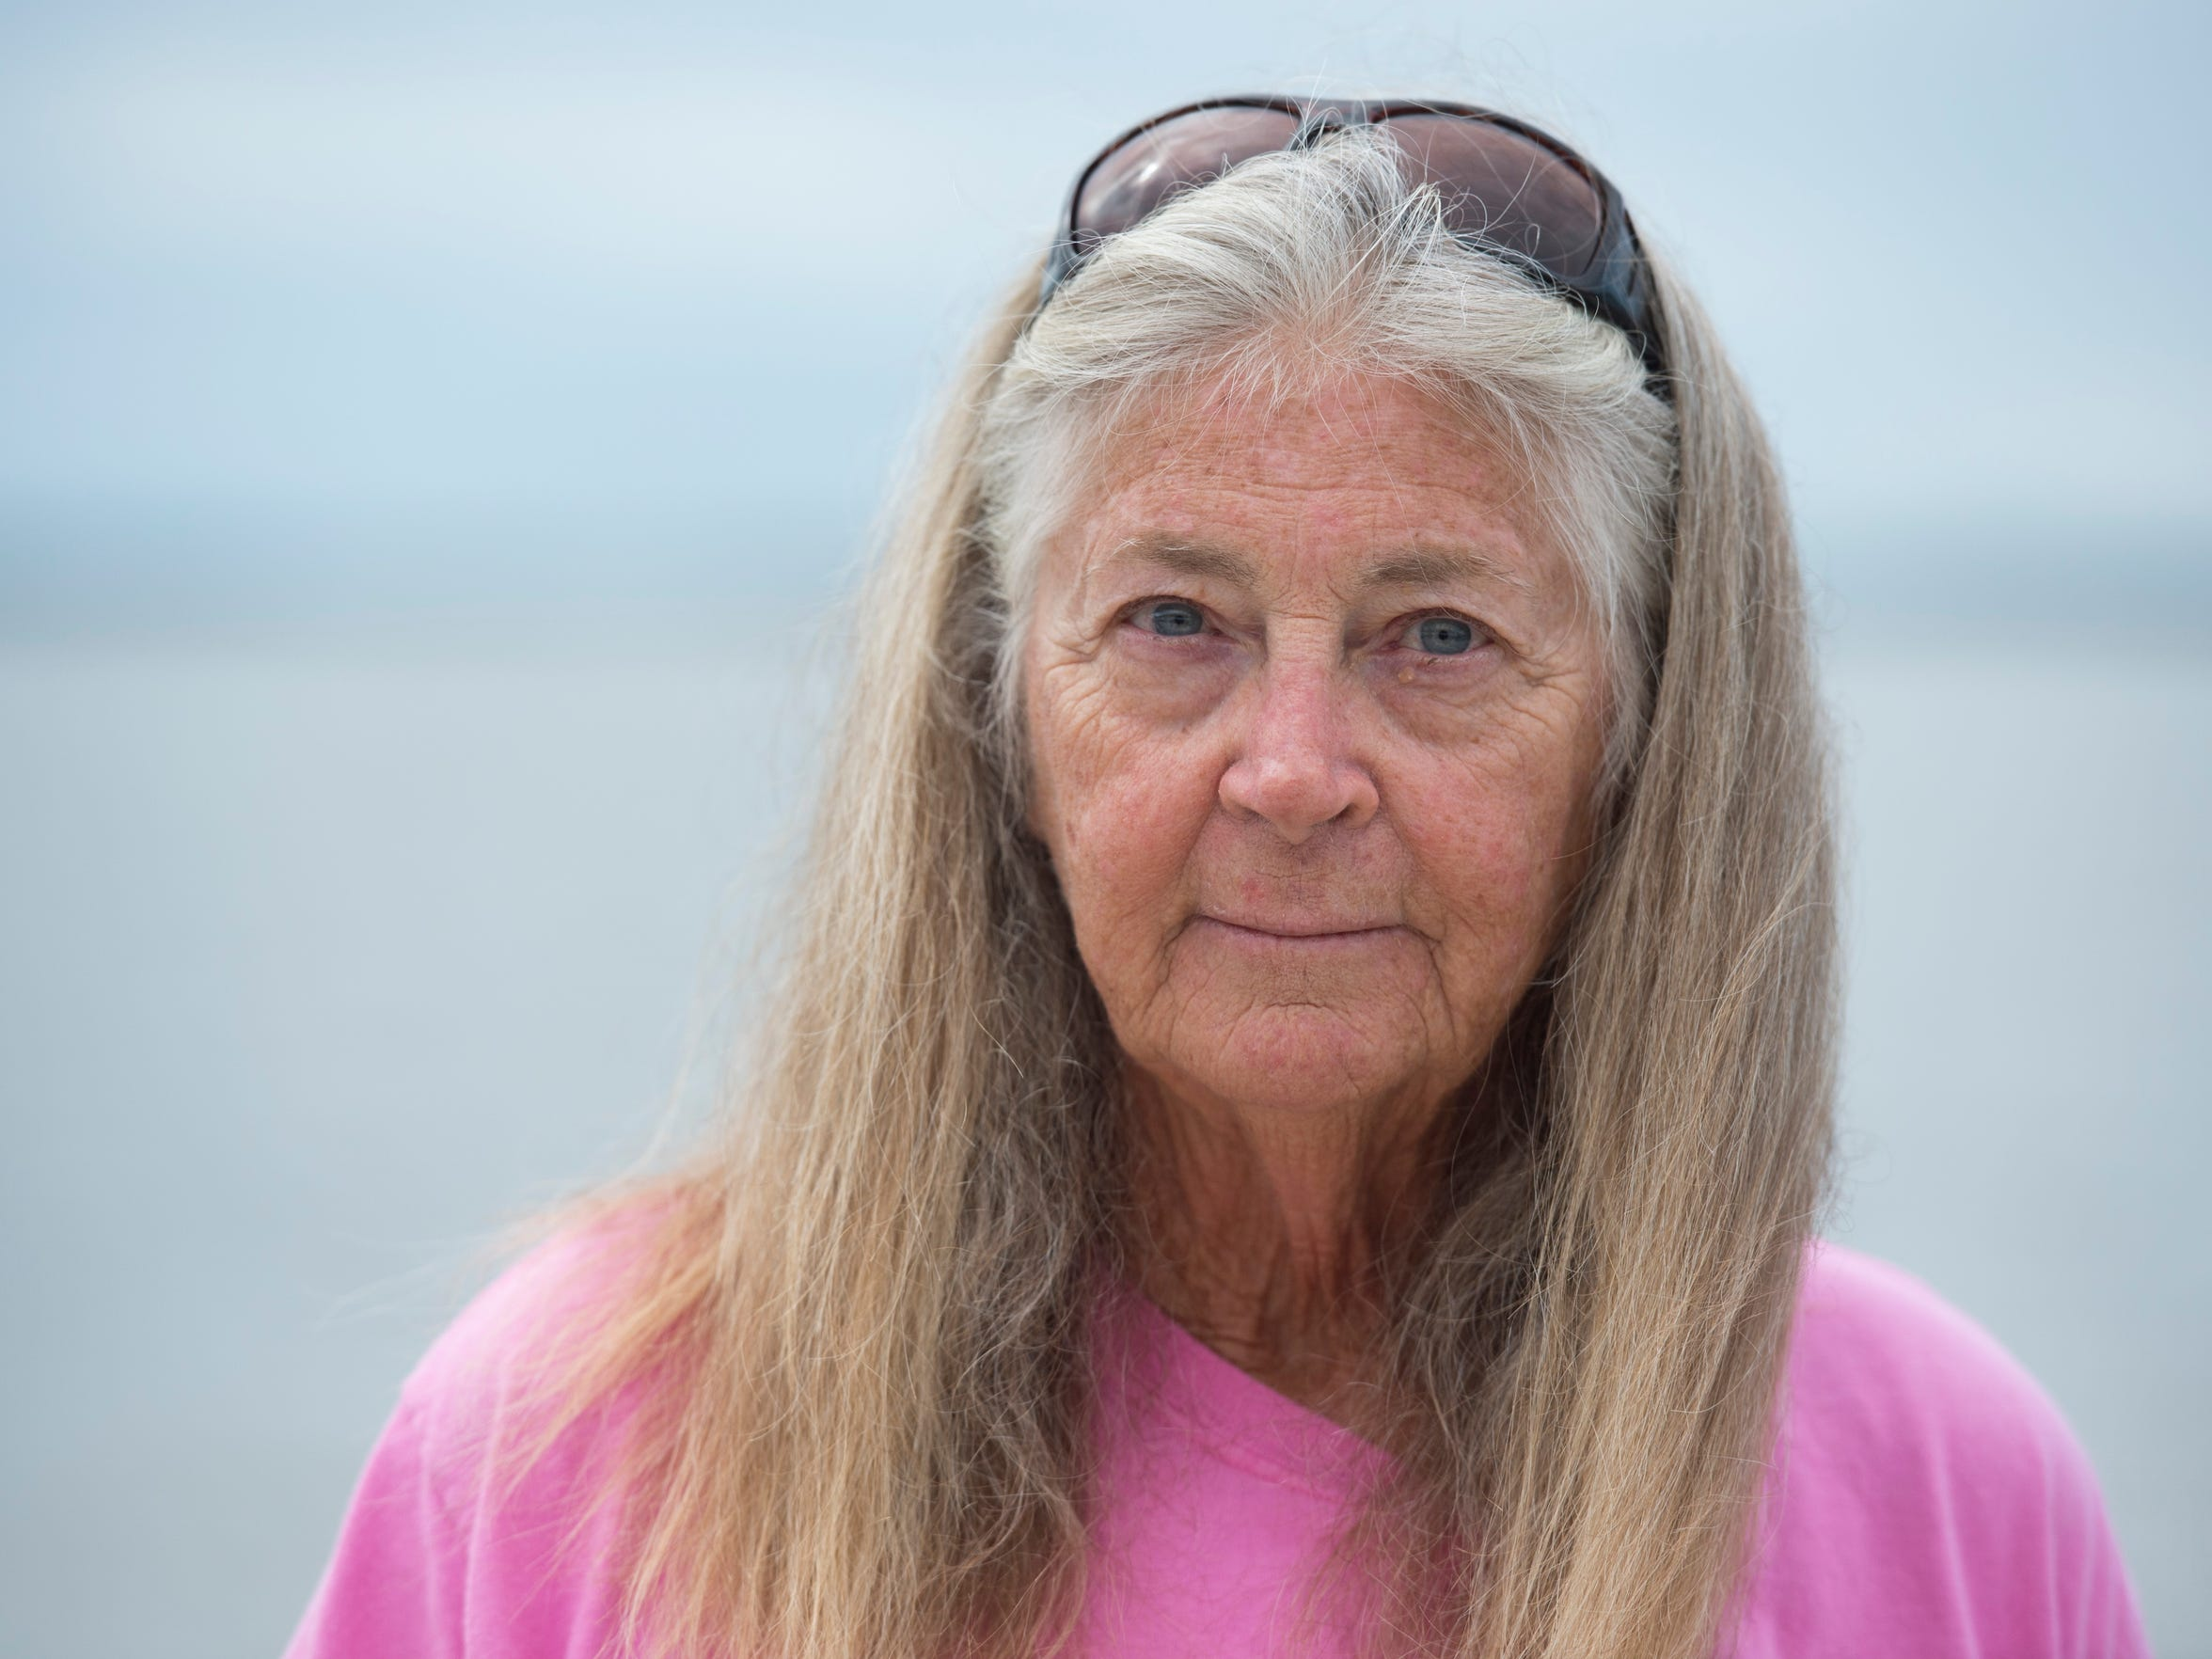 """My whole life has changed because I'm not fishing. I'm just not doing it,"" said Marcia Foosaner, 70, who, after spending nearly 30 years as a fishing guide on the St. Lucie River and Indian River Lagoon, is moving from Palm City to Lake Placid because of the polluted water in Martin County. In Lake Placid, Foosaner said she can fish in dozens of lakes that appear ""crystal clear"" and since the city is centrally located, she'll also have access to the Atlantic and Gulf coasts."